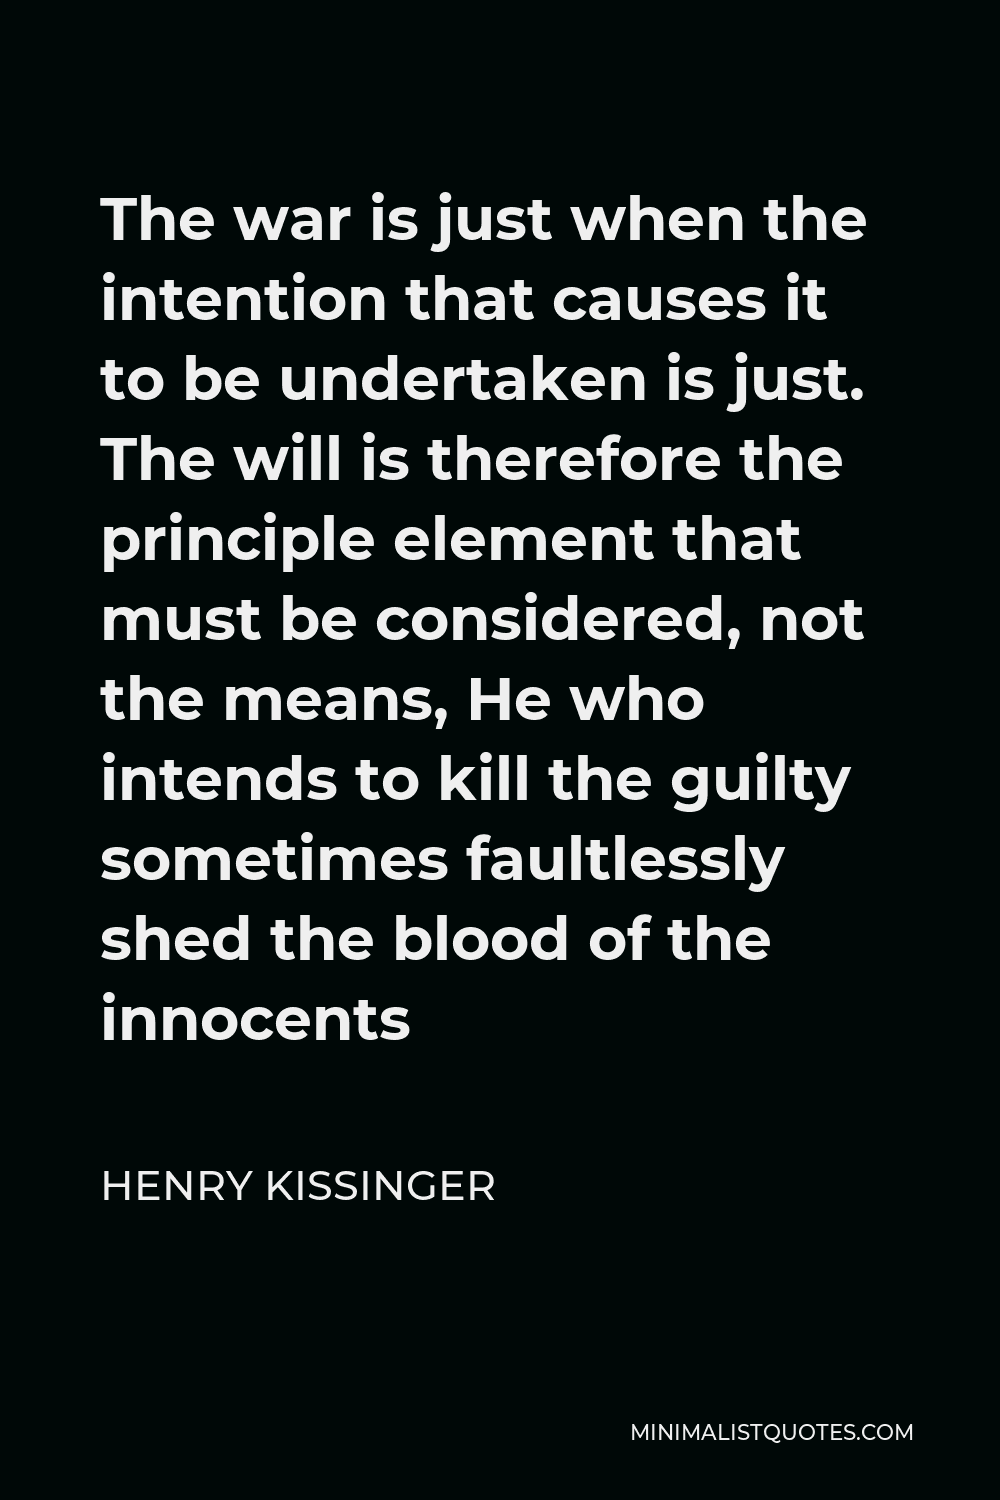 Henry Kissinger Quote - The war is just when the intention that causes it to be undertaken is just. The will is therefore the principle element that must be considered, not the means, He who intends to kill the guilty sometimes faultlessly shed the blood of the innocents